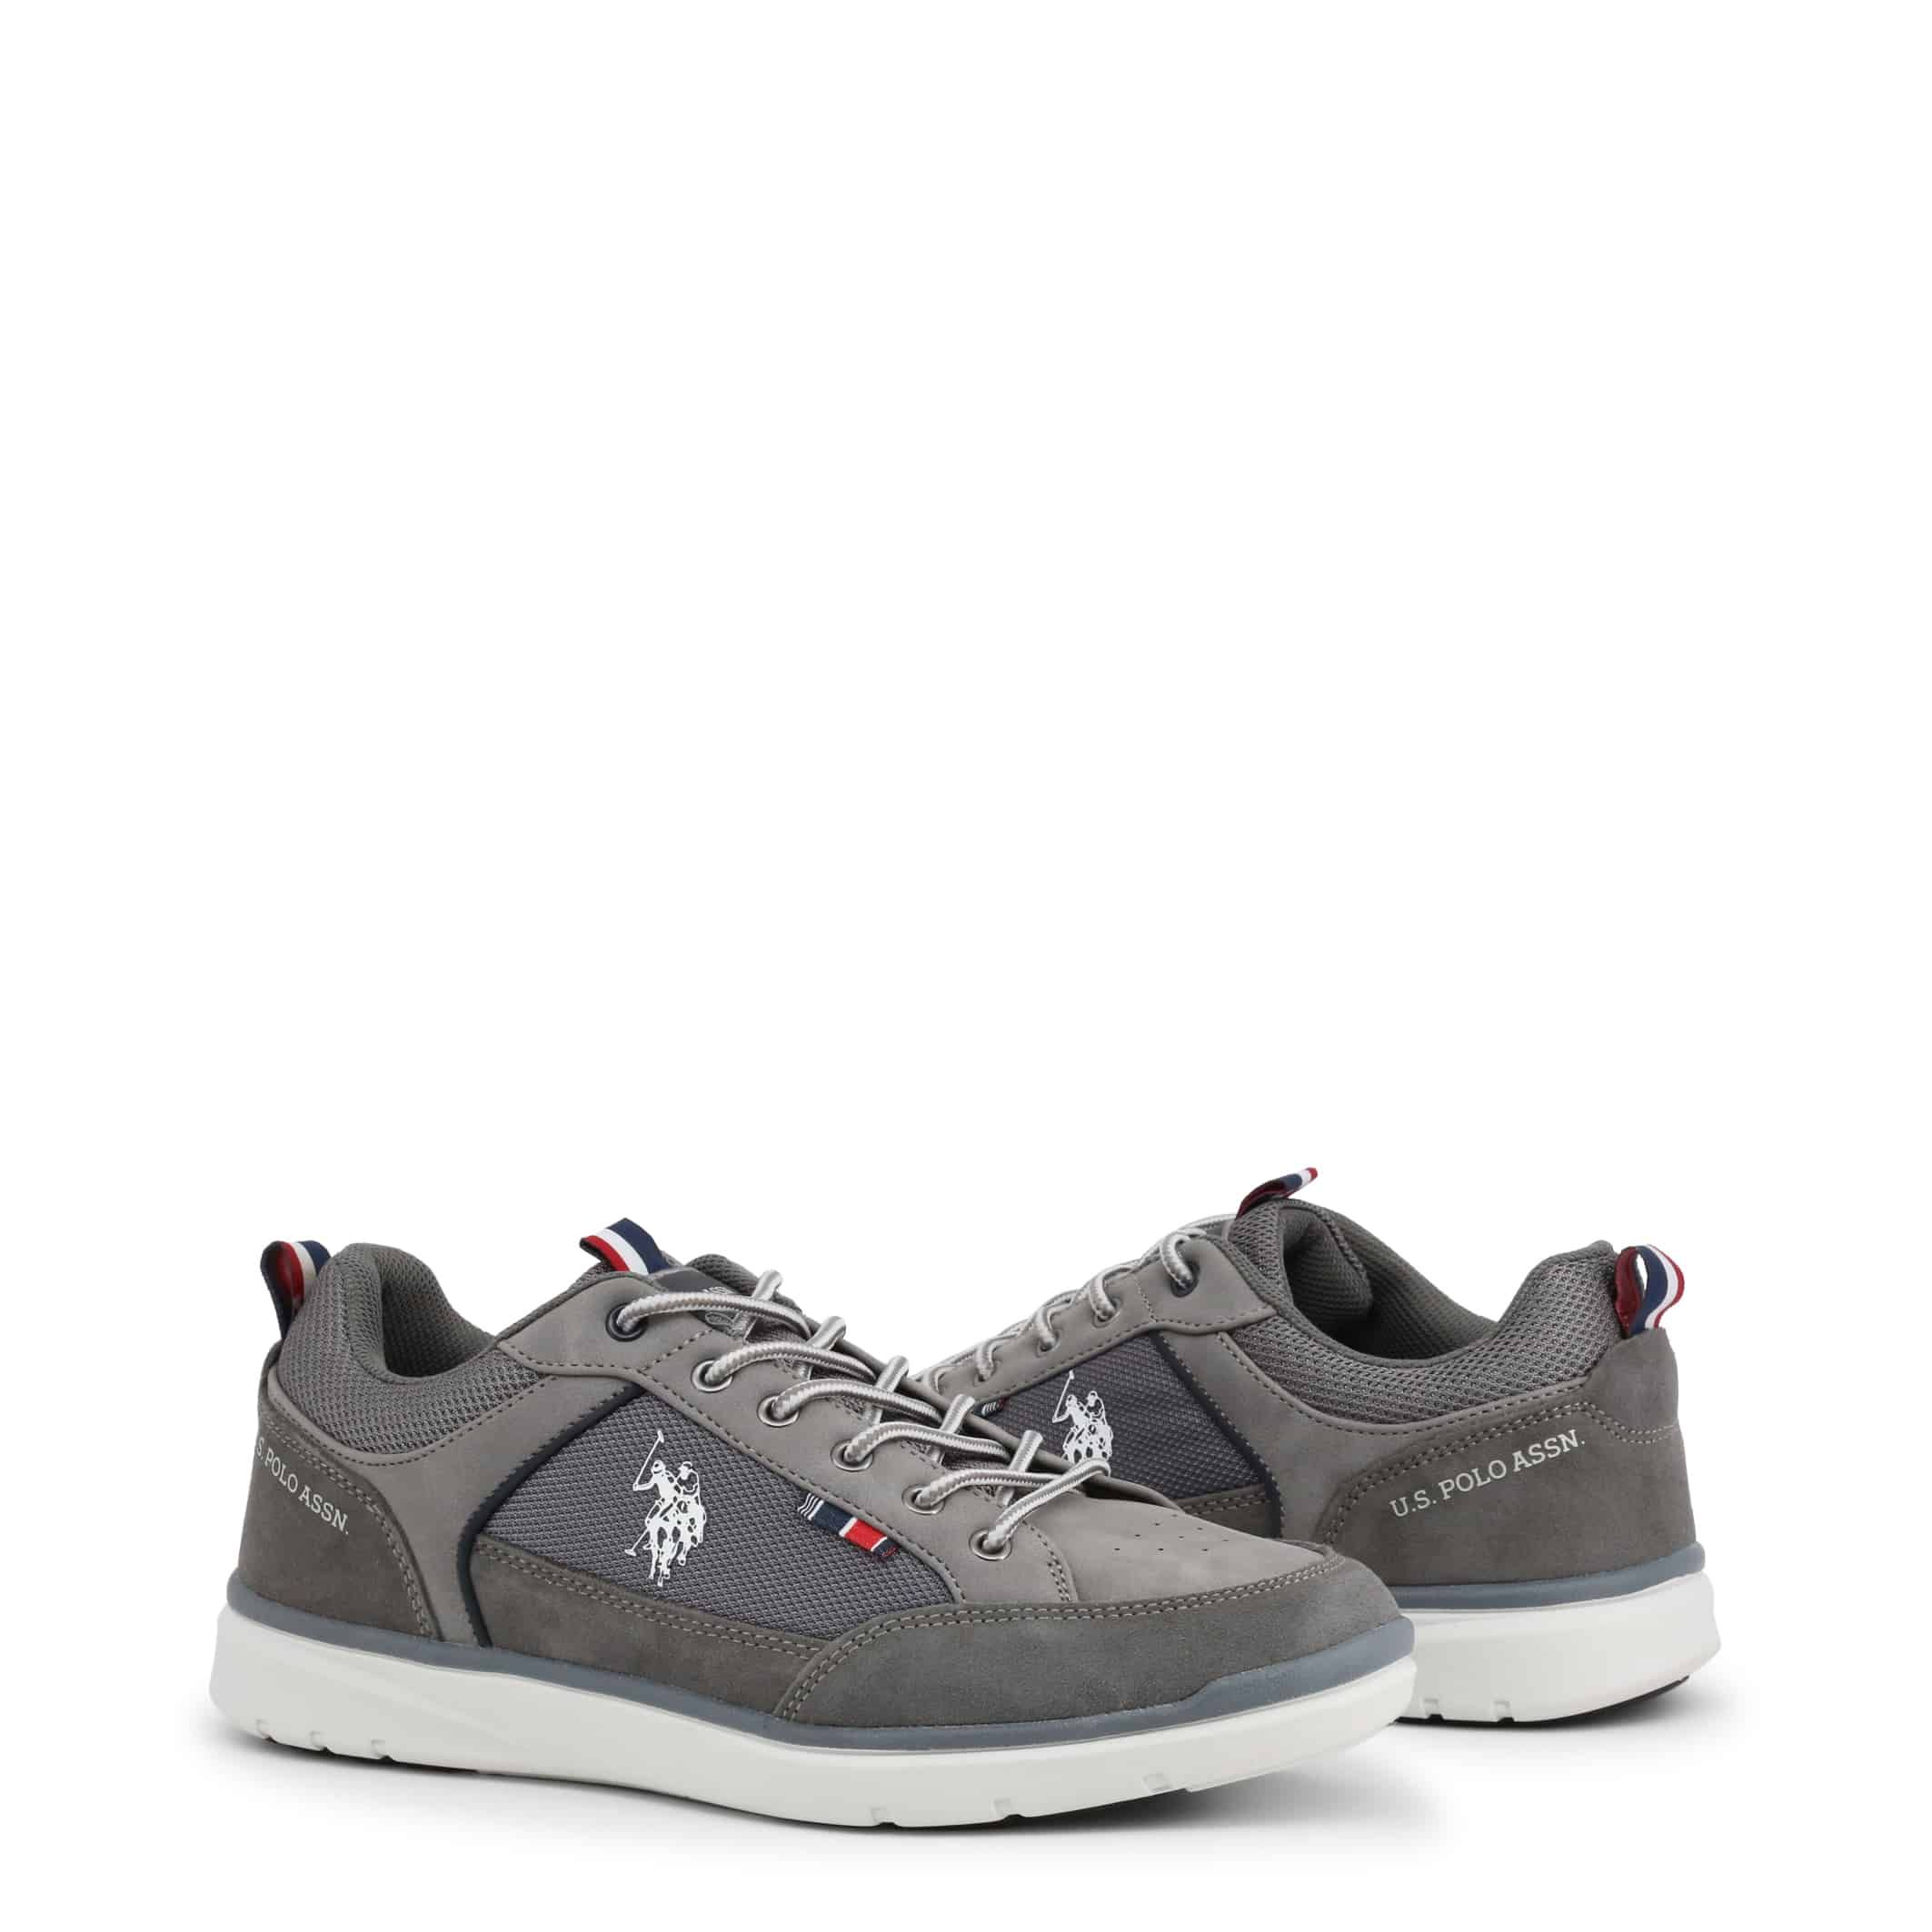 Sneakers U.S. Polo Assn. – YGOR4129S0_YM1